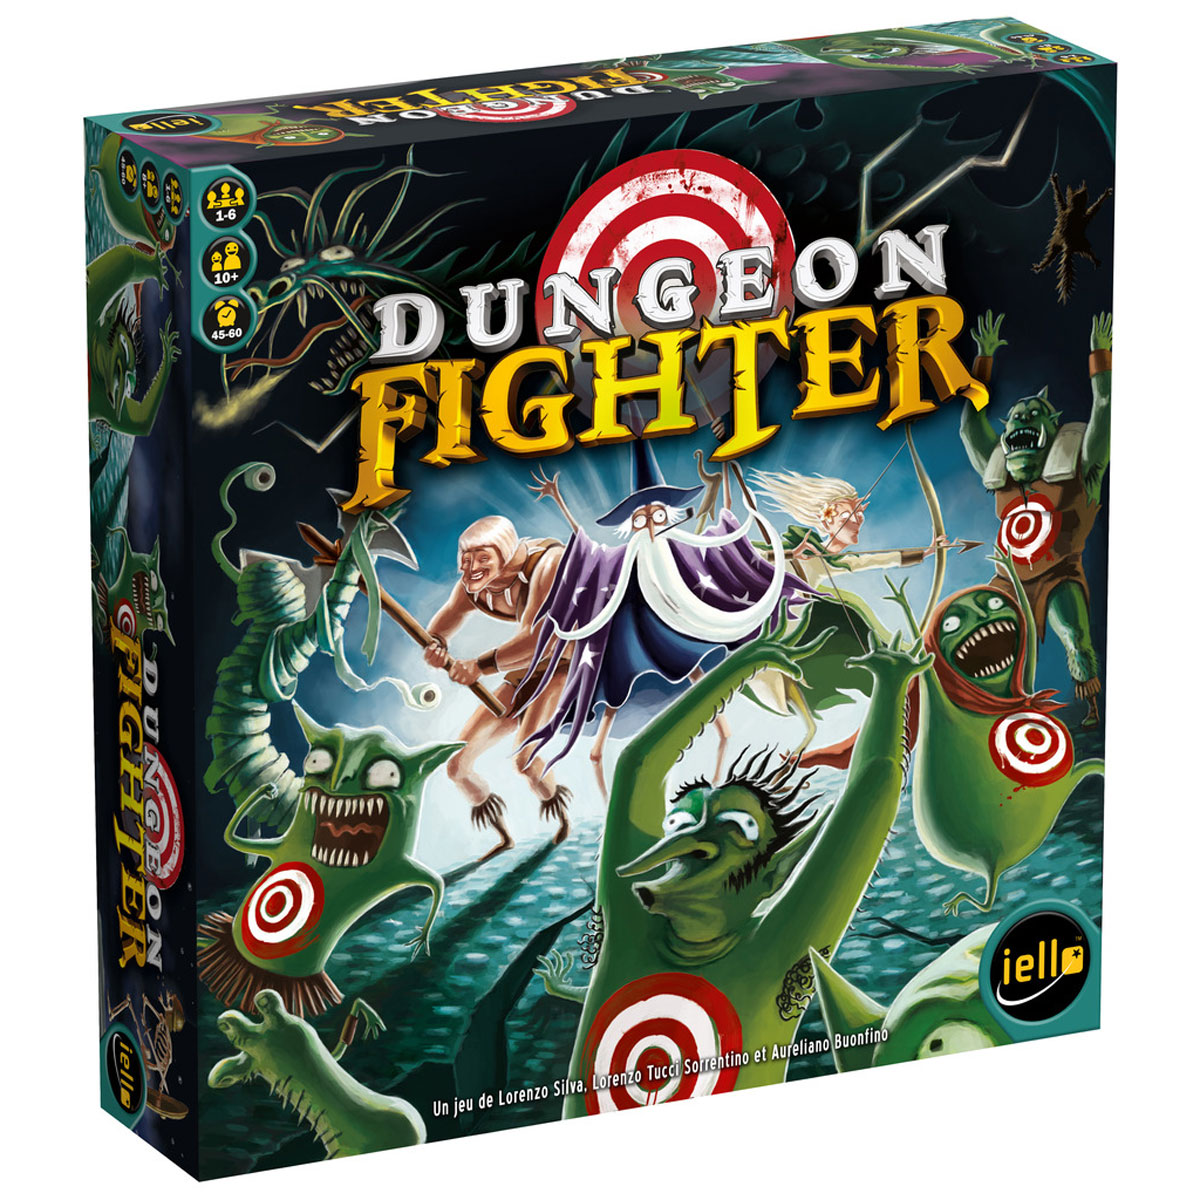 DungeonFighter_3Dbox